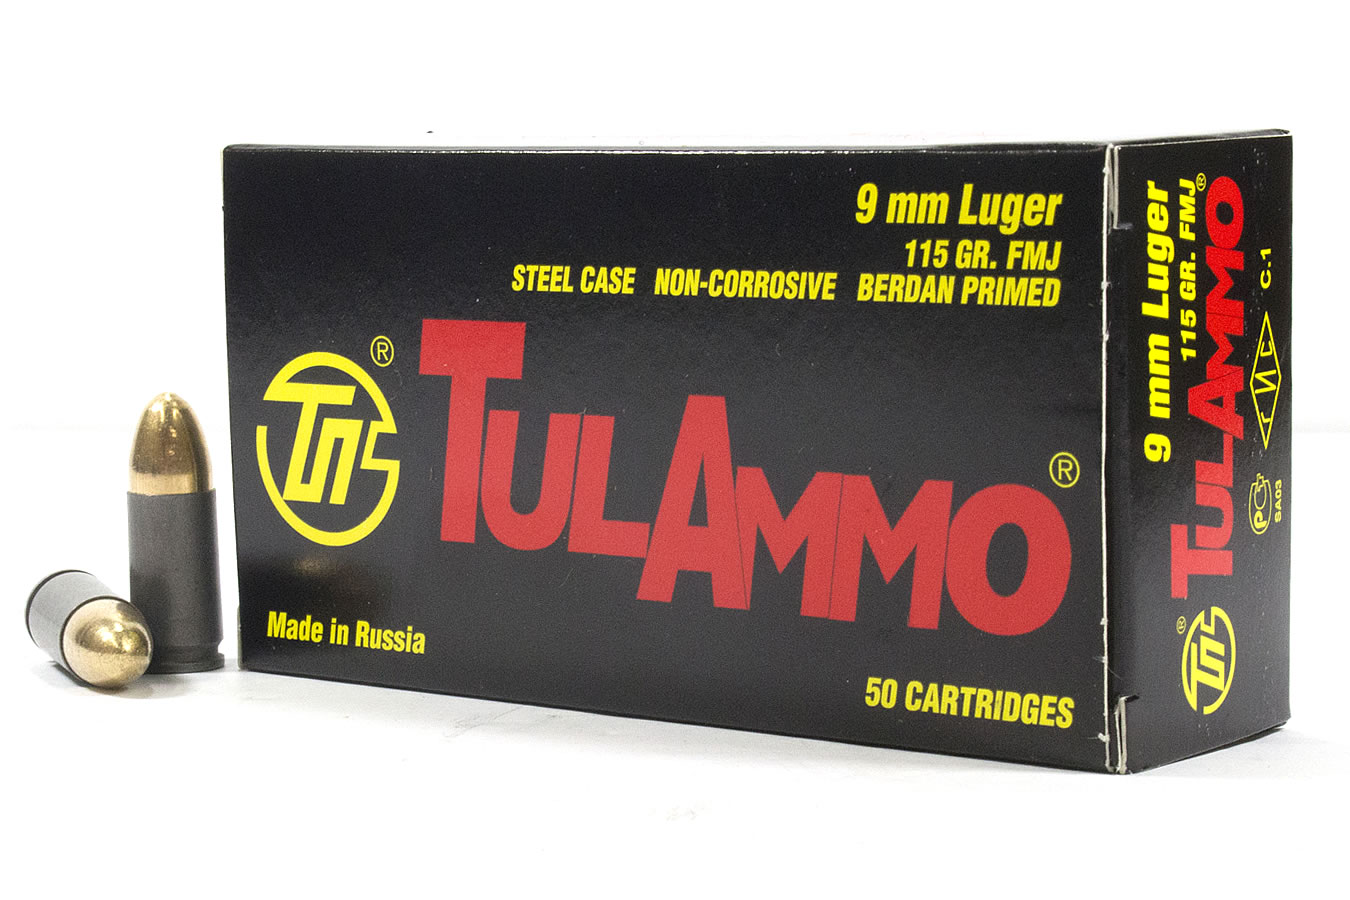 9MM 115 GR FMJ STEEL CASE